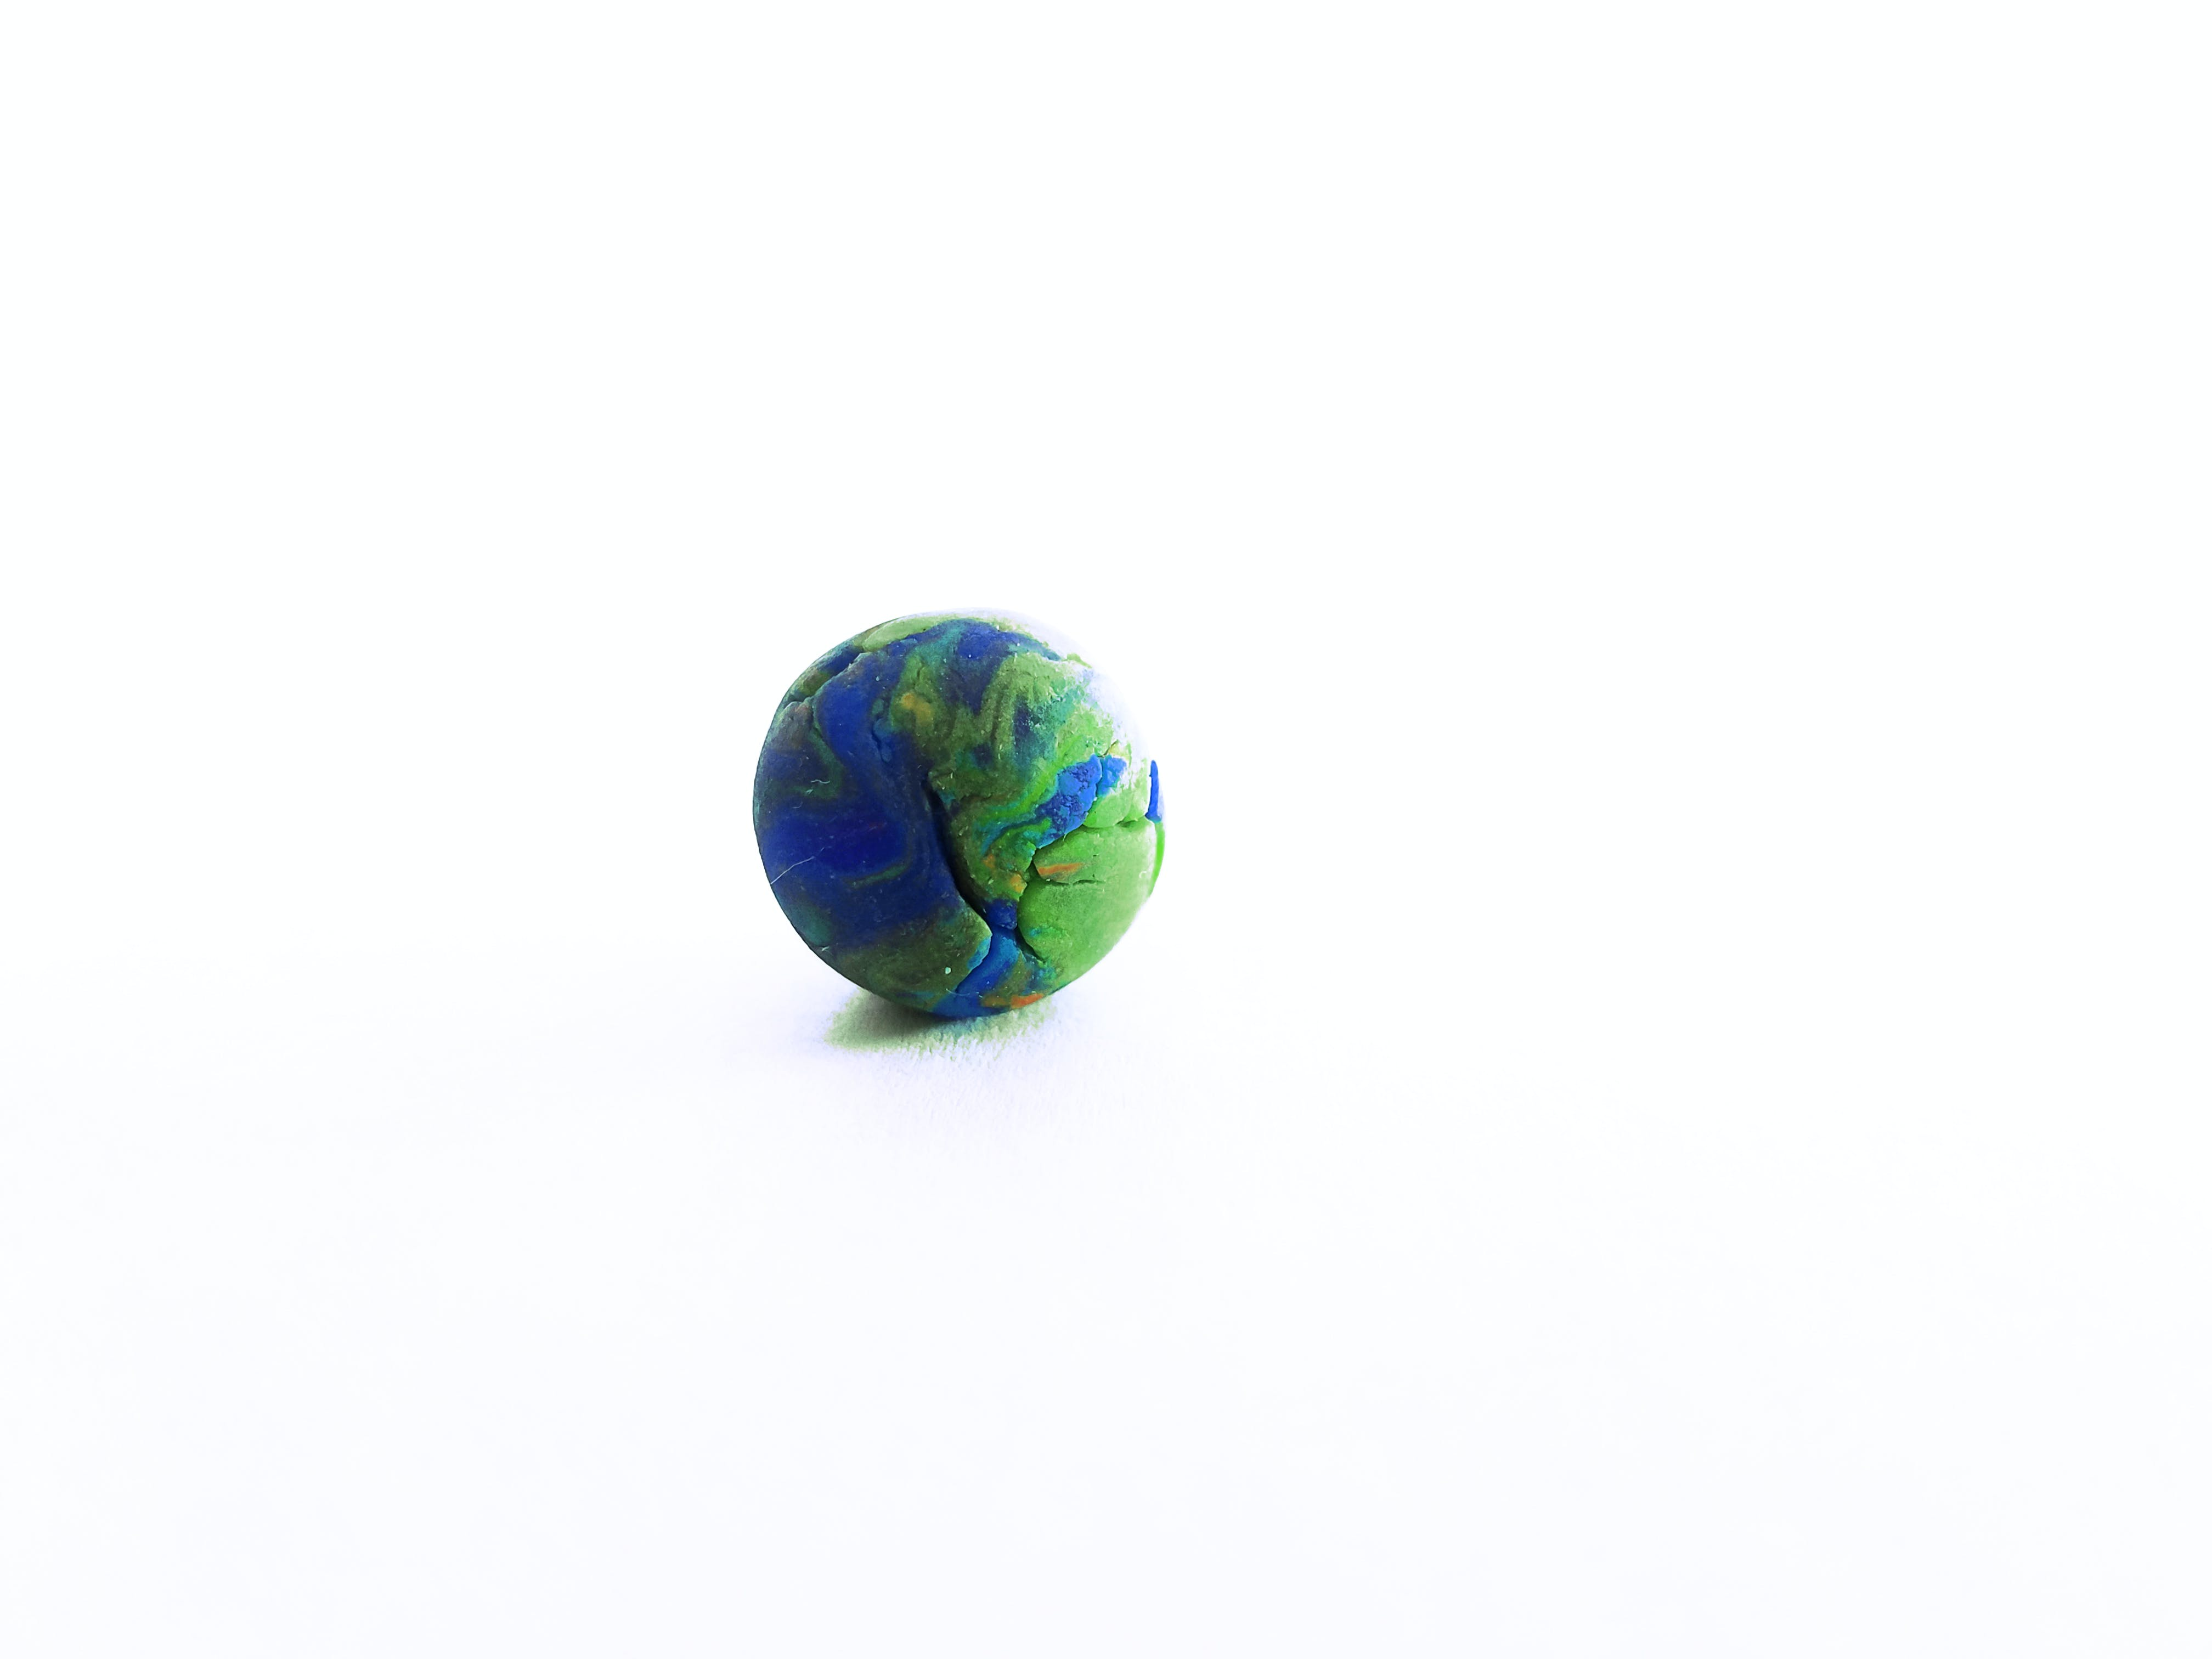 Free stock photo of ball, earth, globe, land